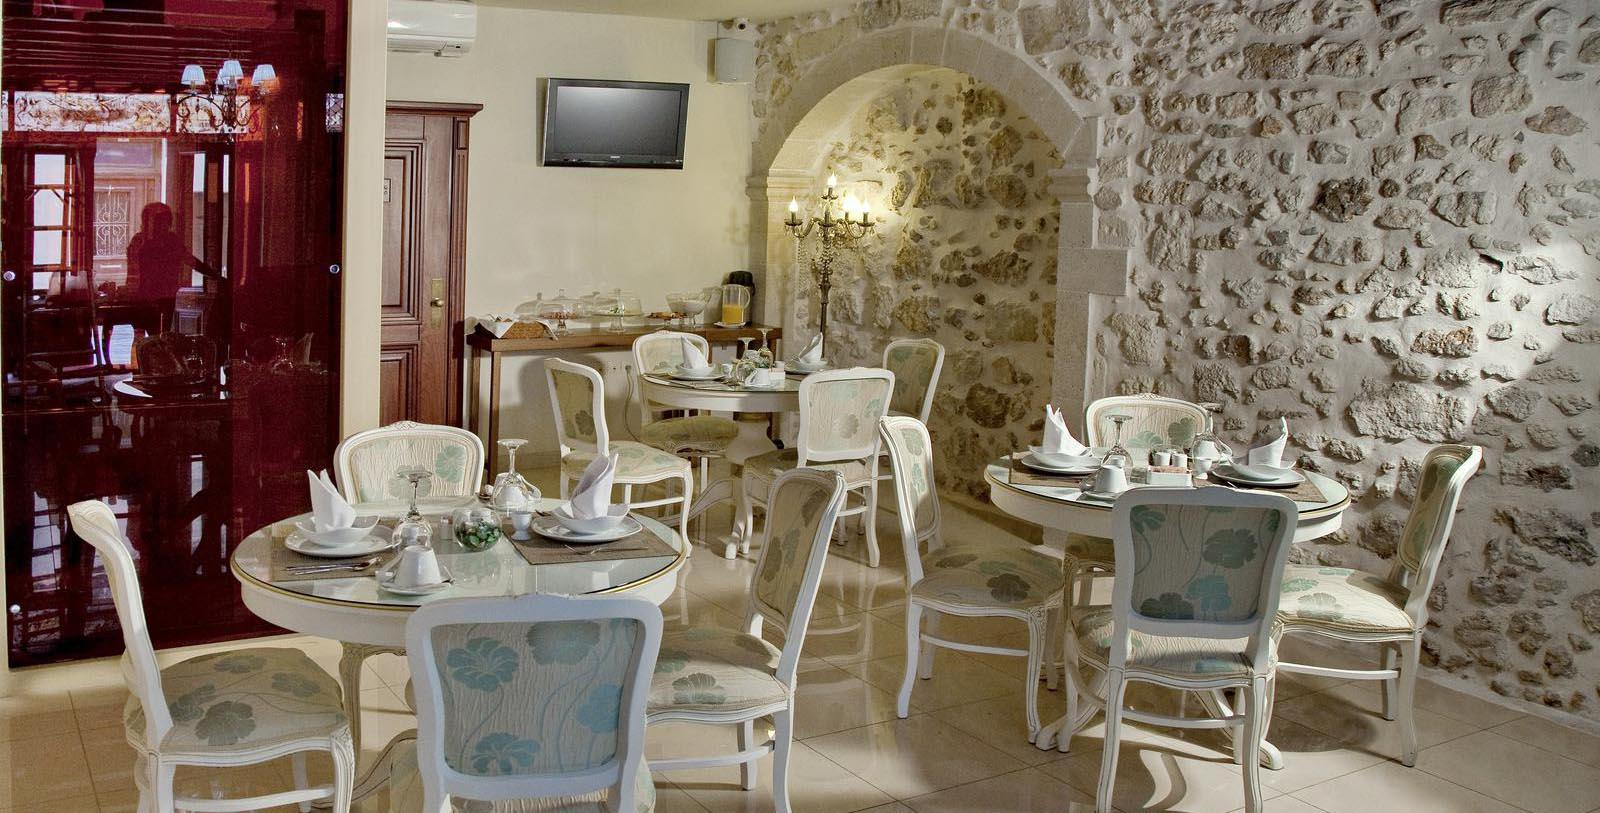 Image of restaurant Antica Dimora Suites, 1820, Member of Historic Hotels Worldwide, in Crete, Greece, Taste